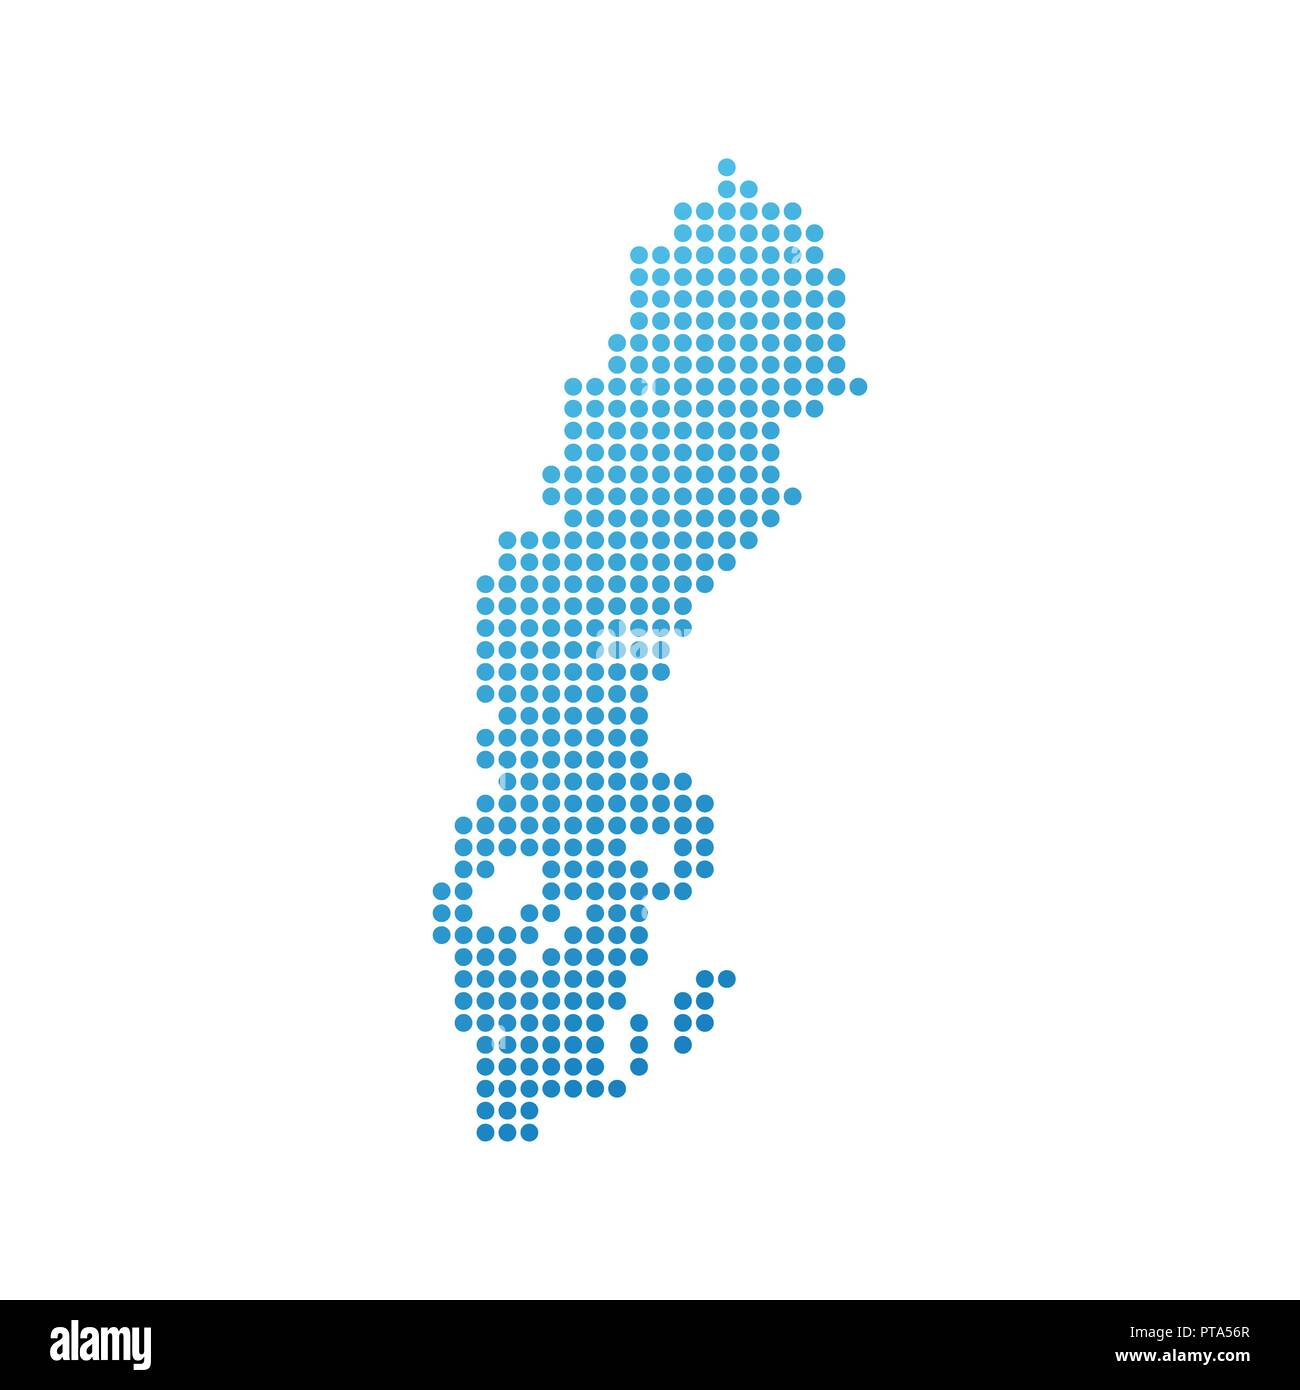 Map of Sweden - Stock Image